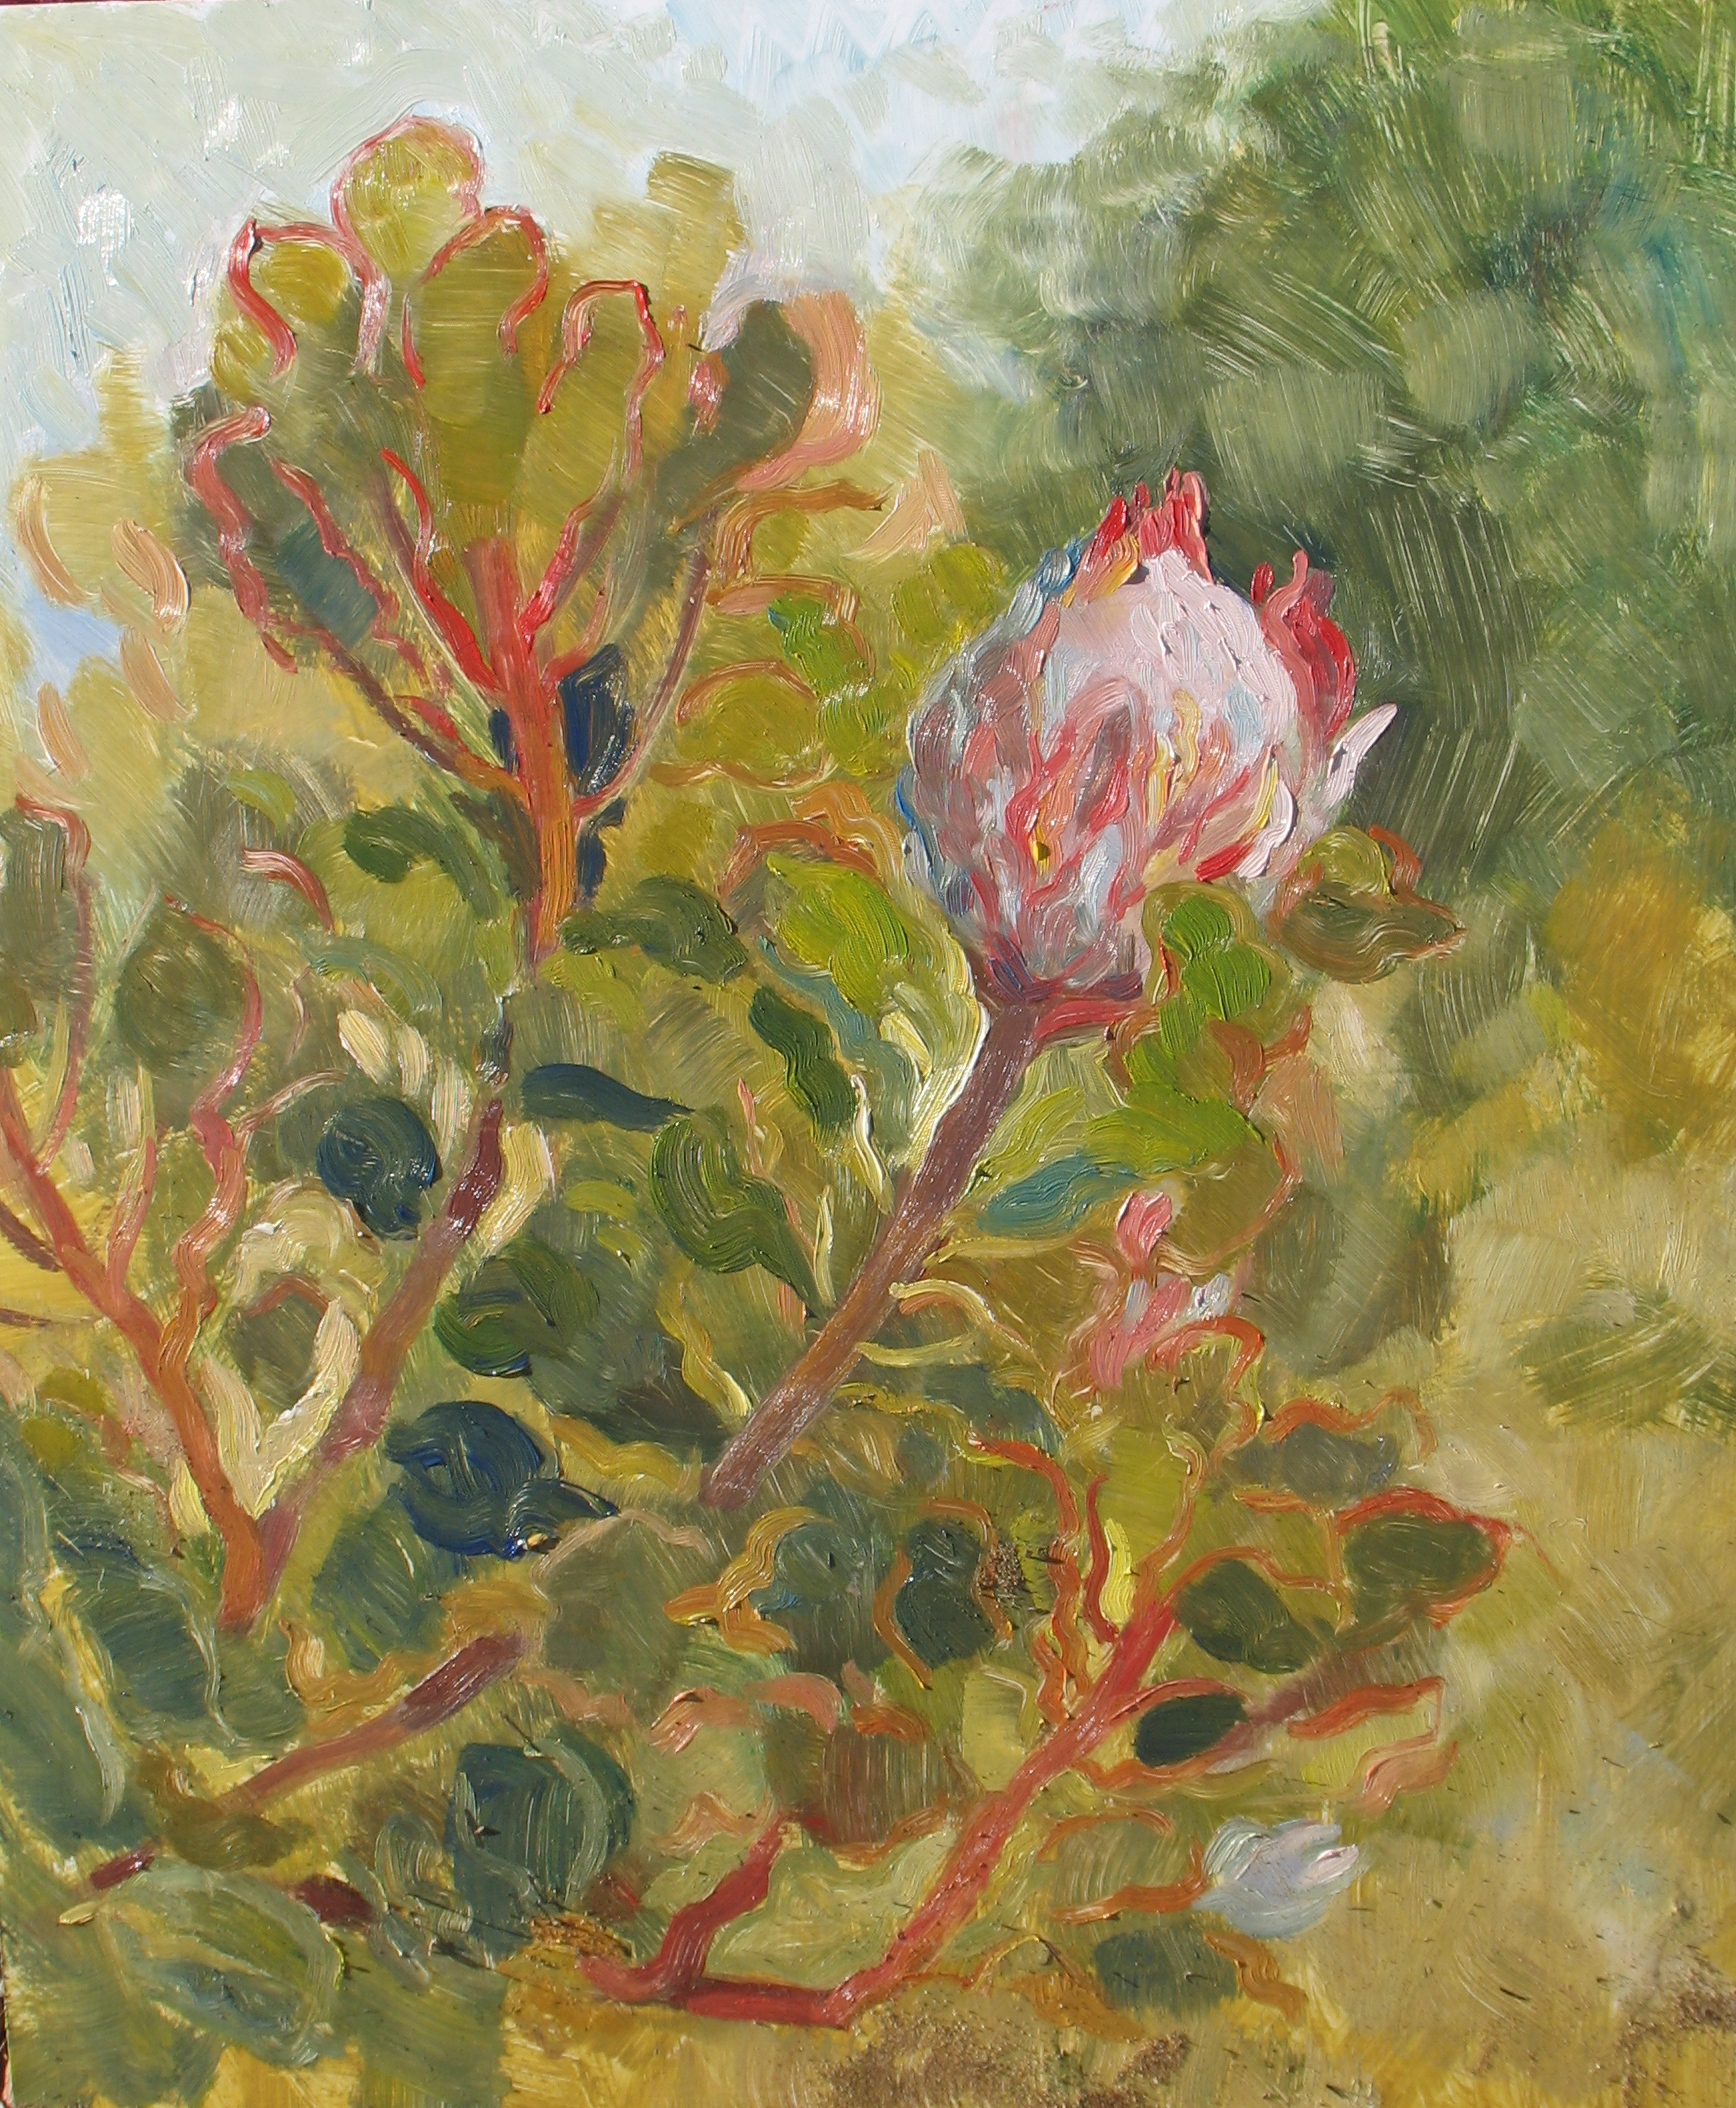 Proteas, oil on panel, 24 x 20 inches, 2011 - UNAVAILABLE